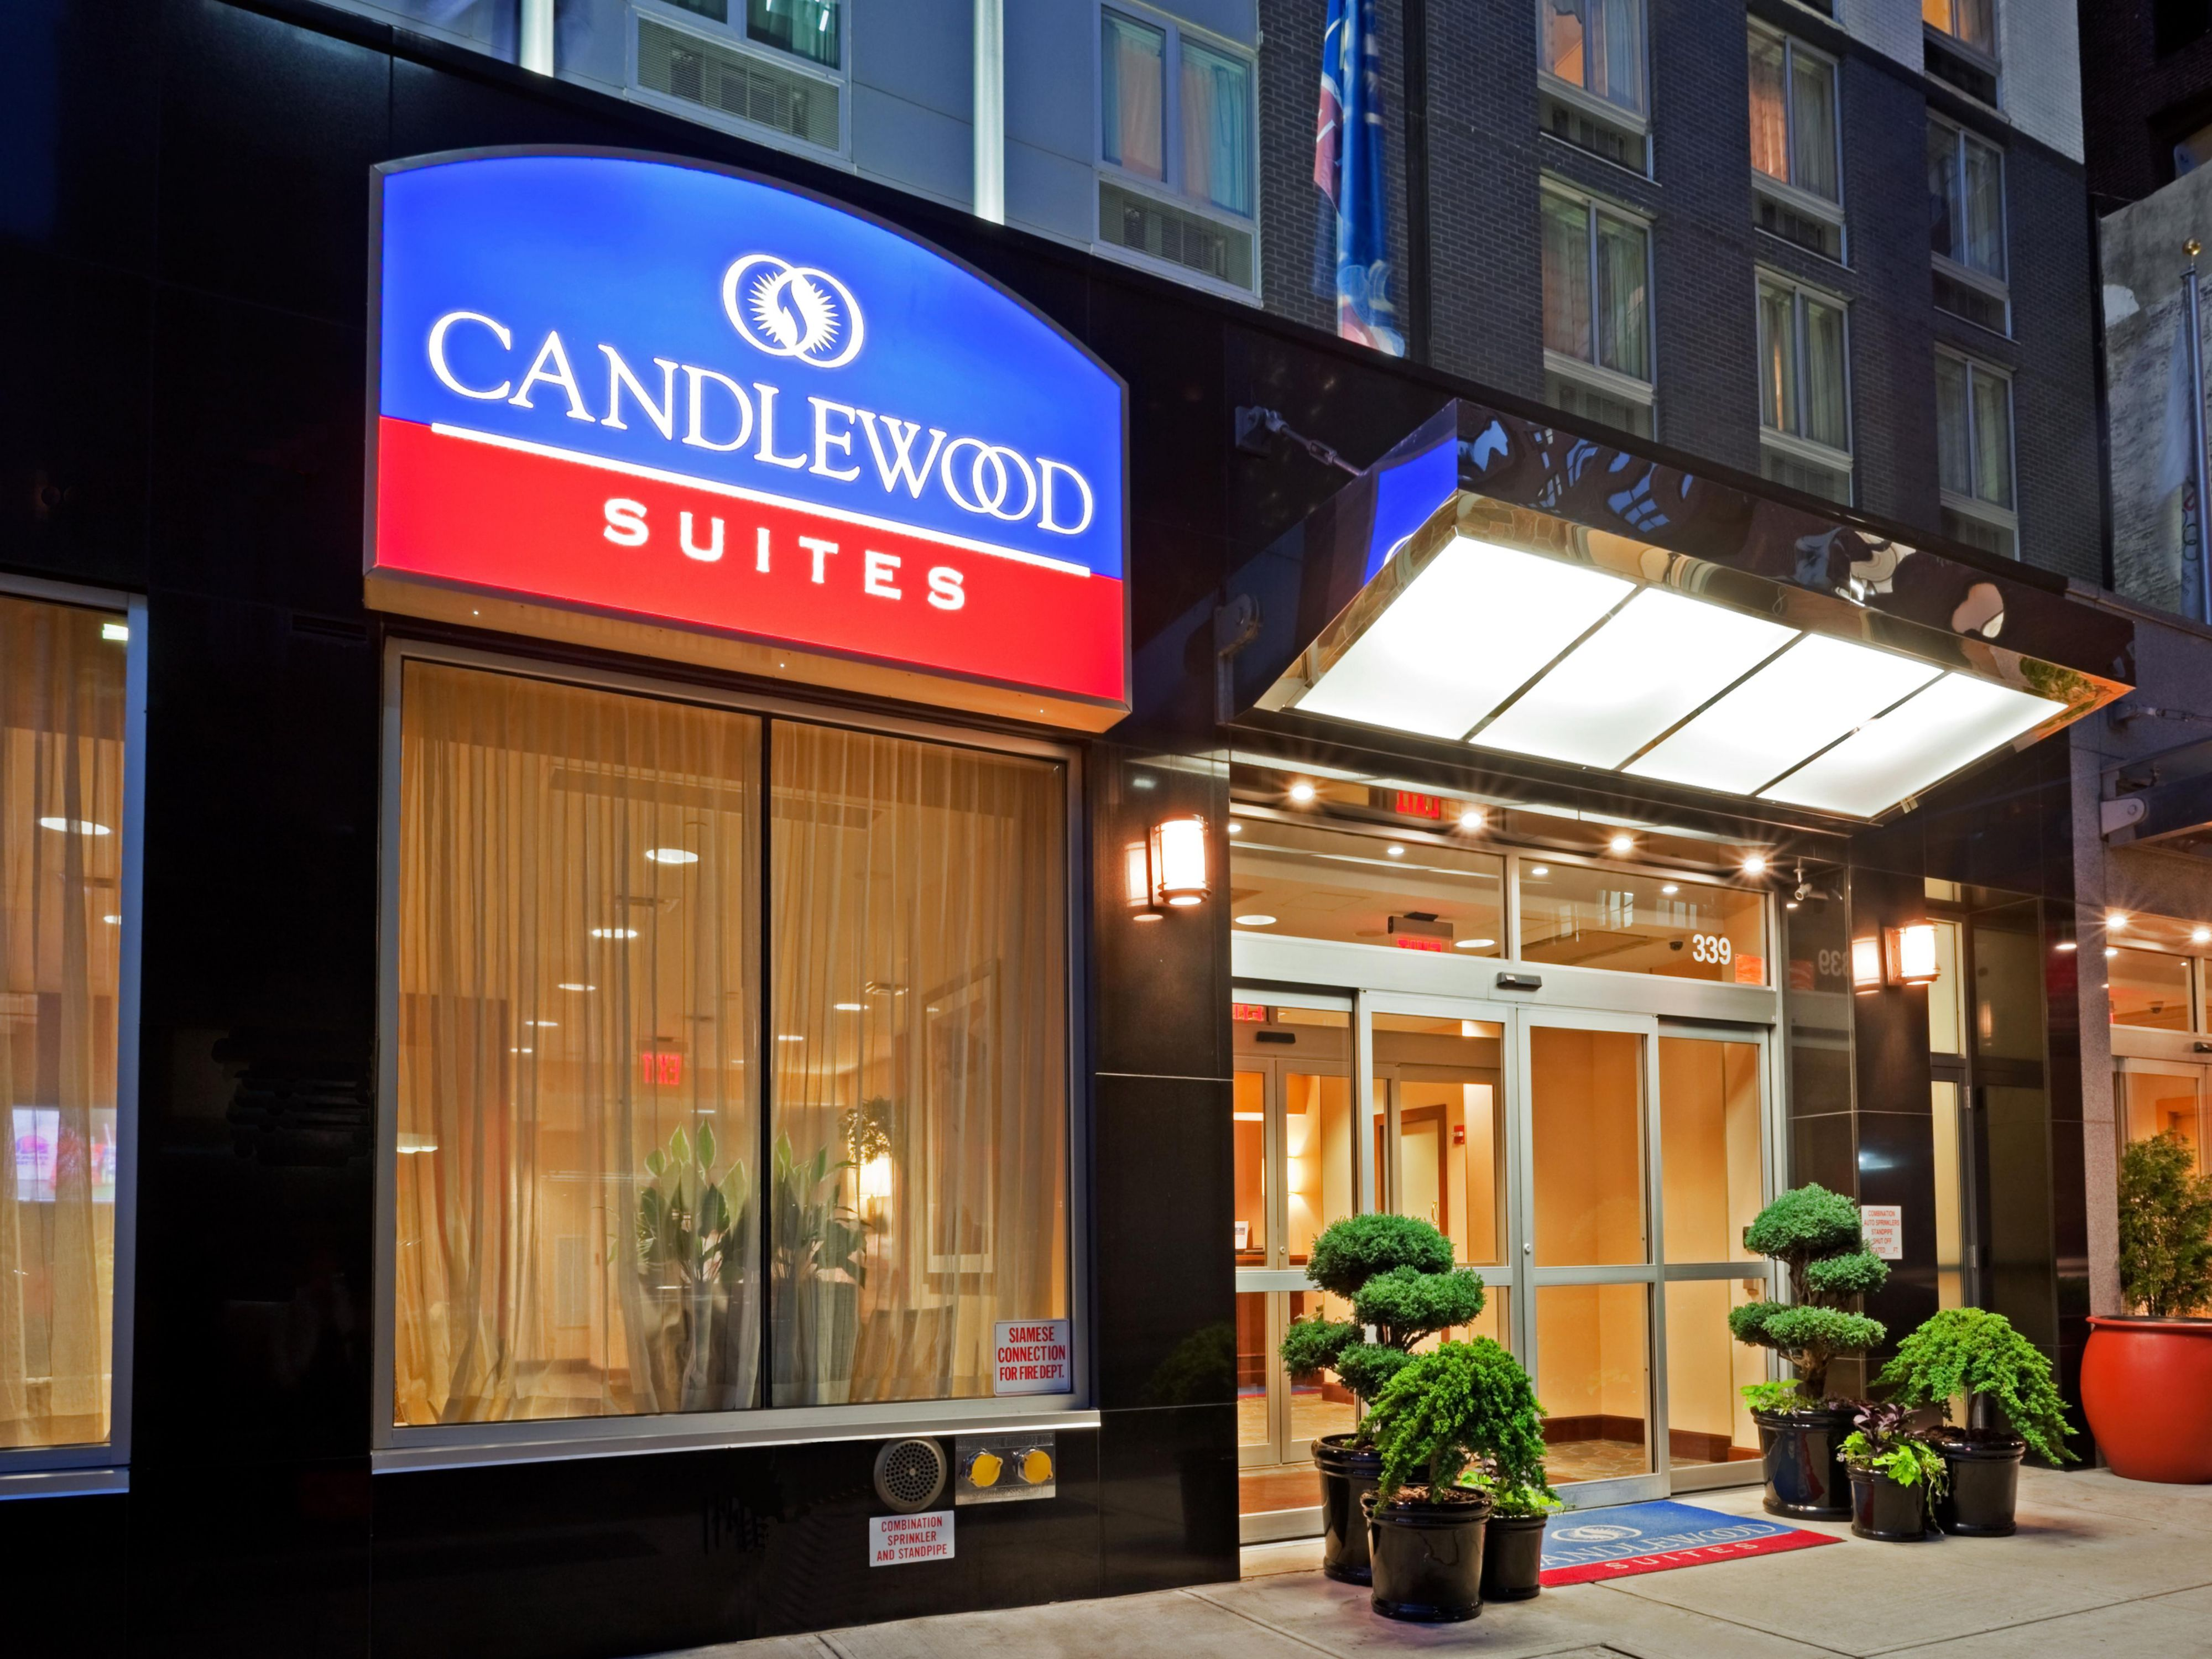 Things to do in new york near candlewood suites new york for Things to do around times square